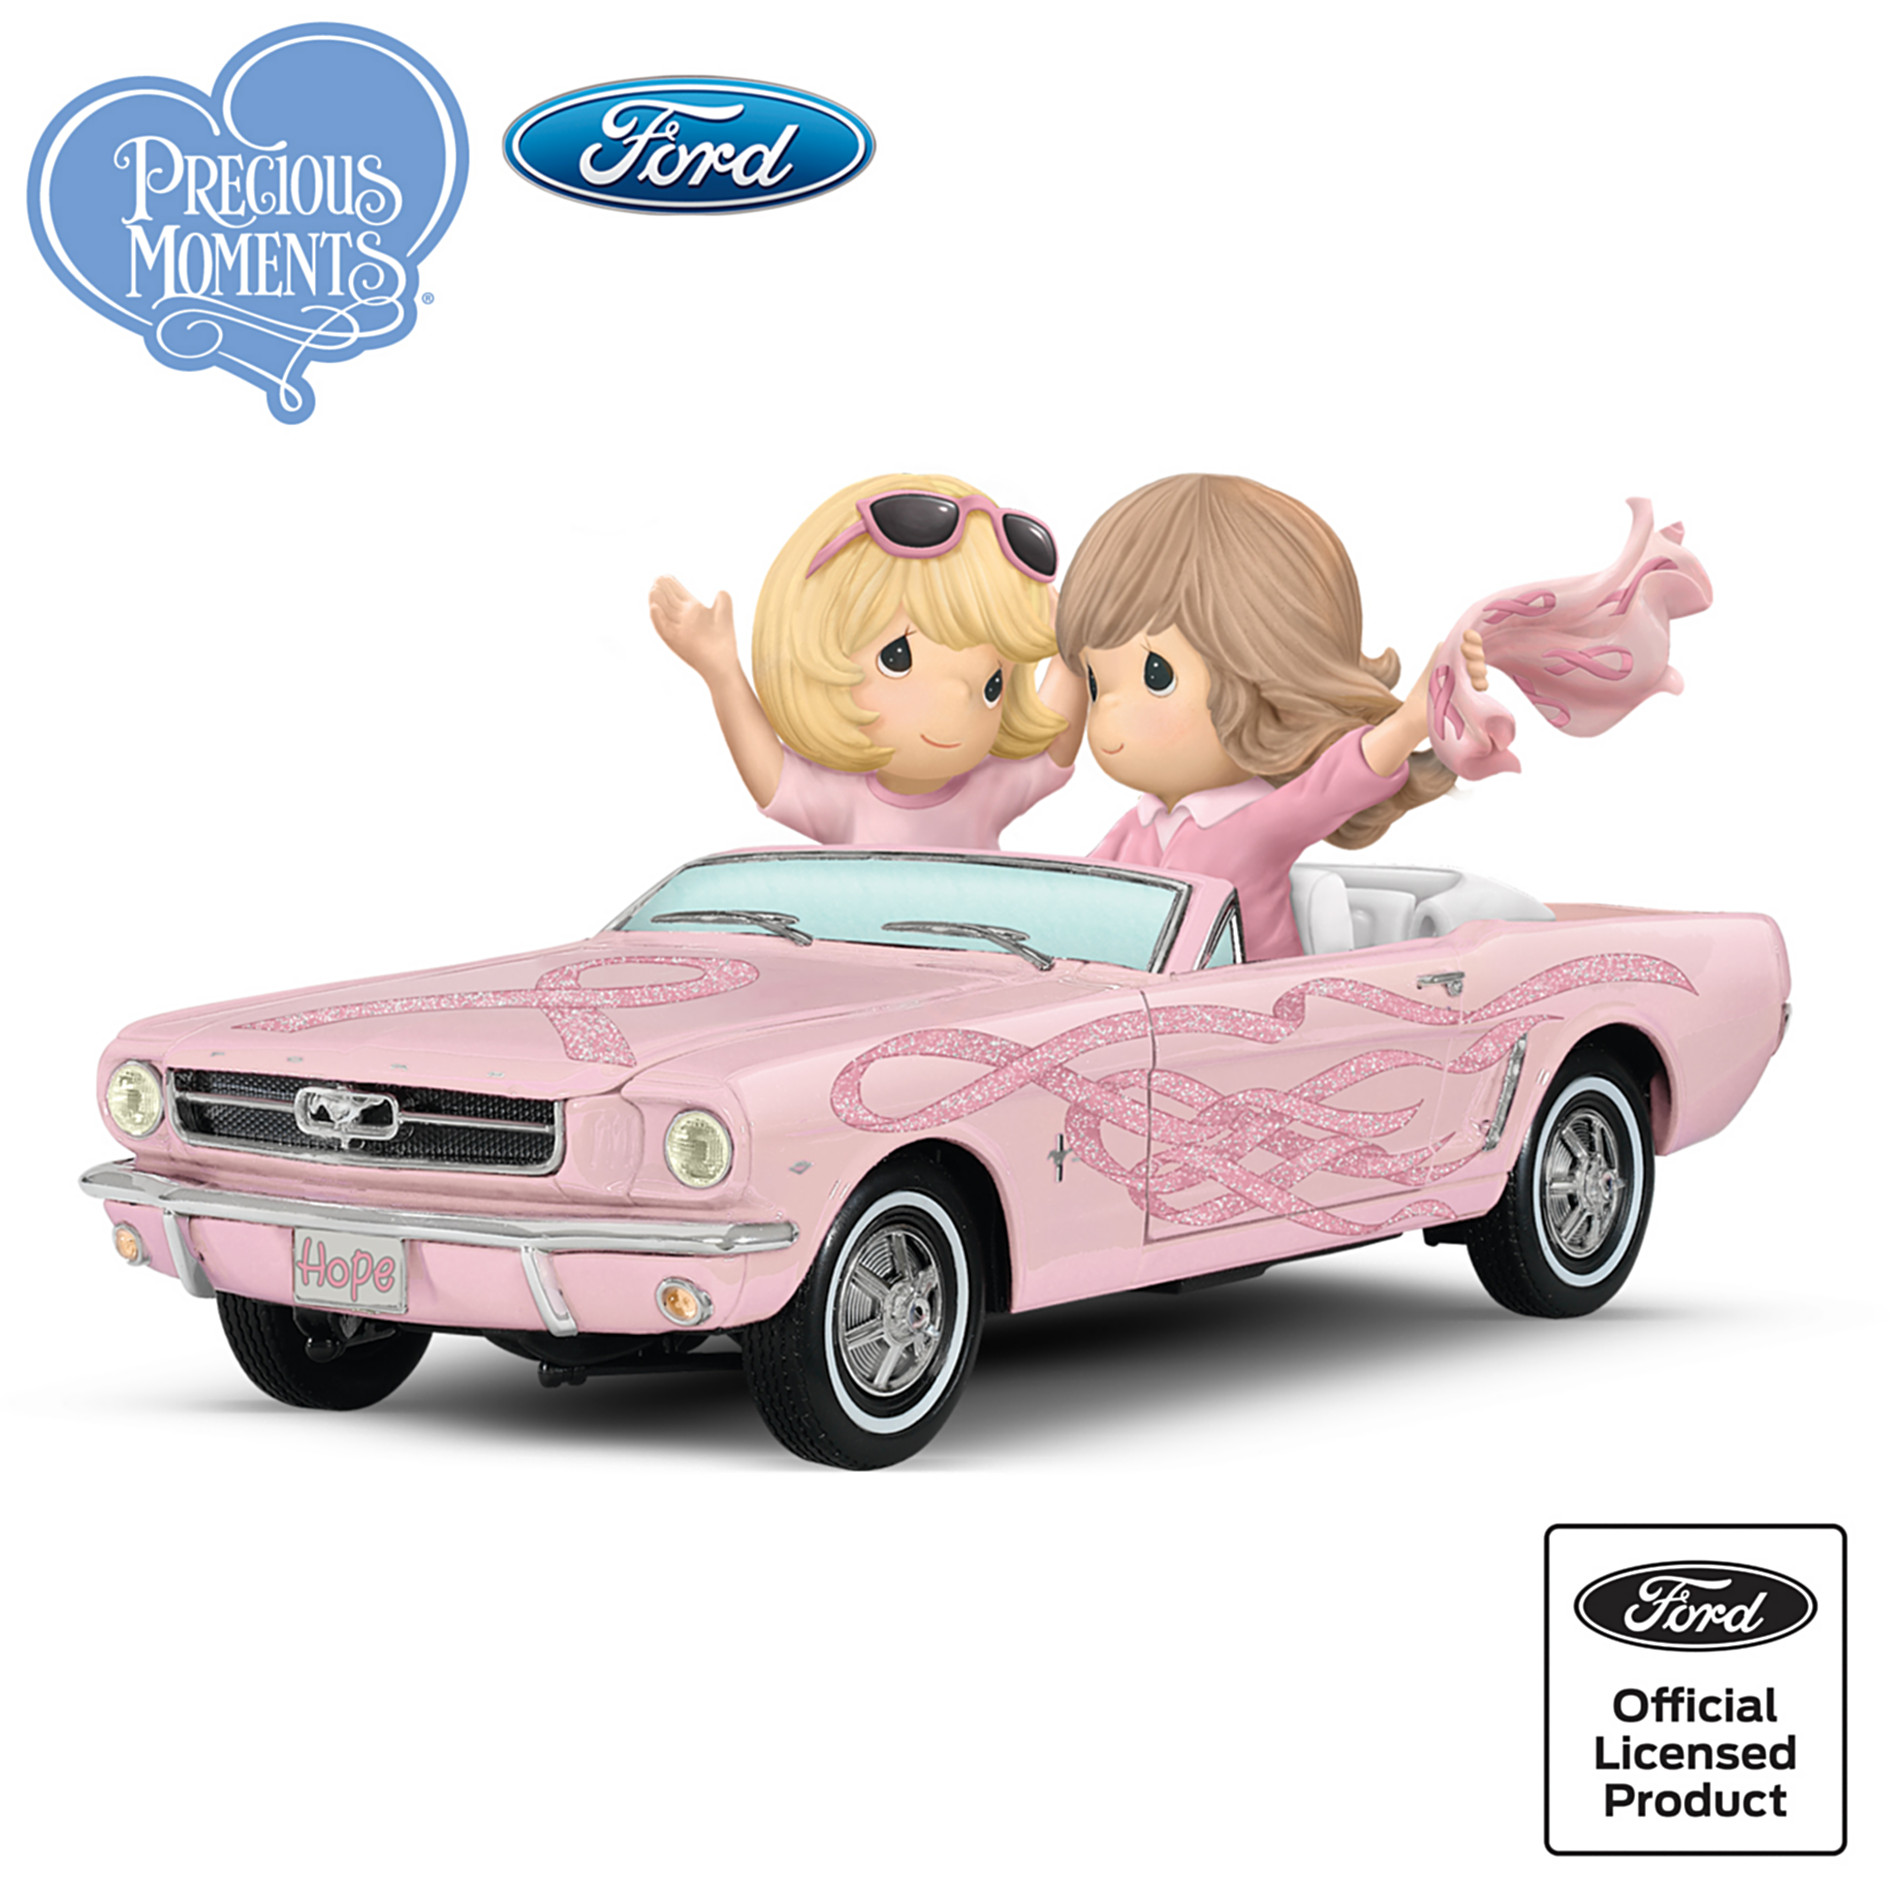 The Hamilton Collection Ford Precious Moments Figurine: On The Road To A Cure at Sears.com